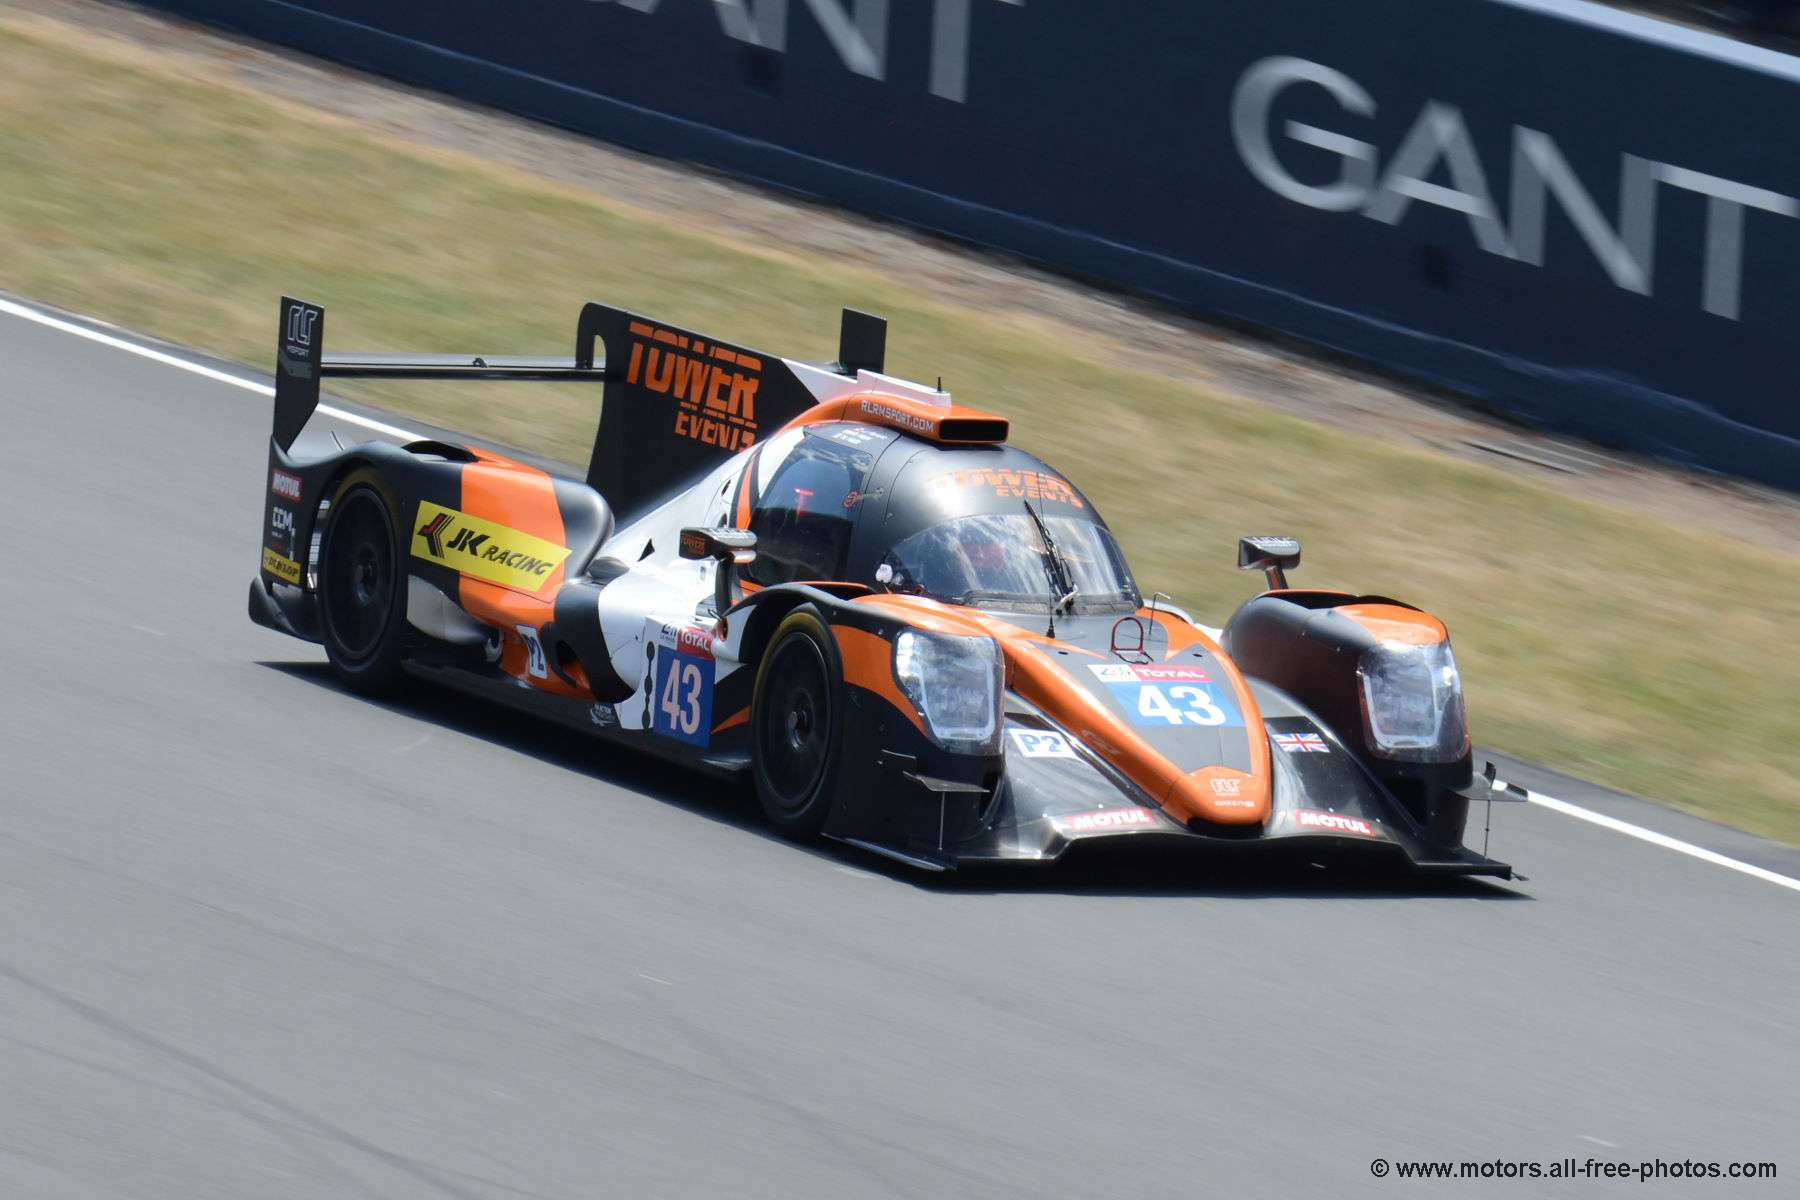 Oreca 07-Gibson - Team RLR M Motorsport-Tower Events